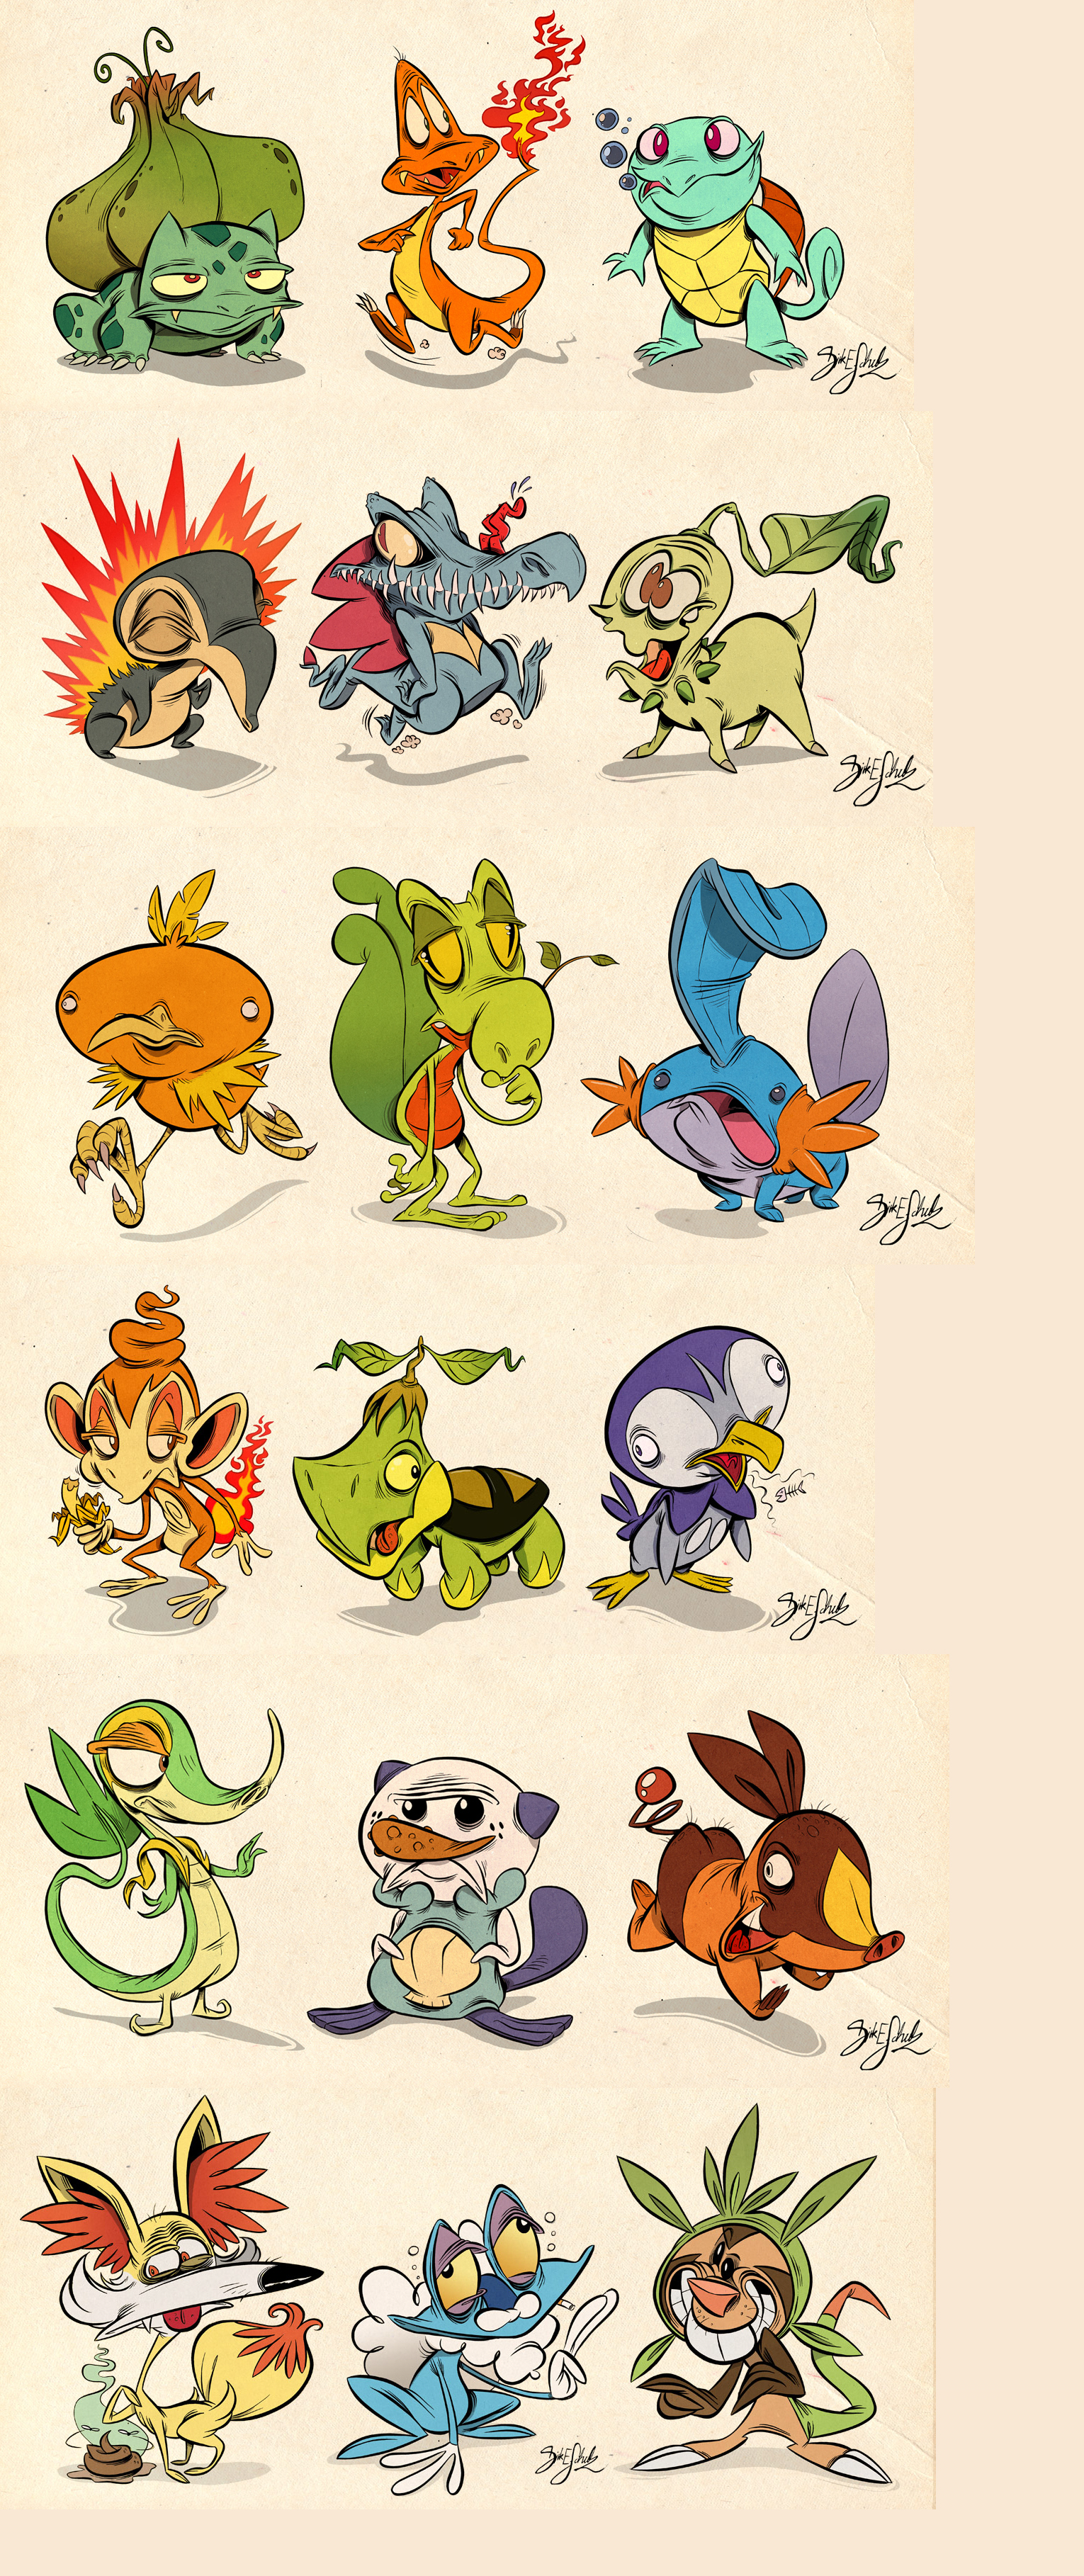 Pokemon imagined by Themrock